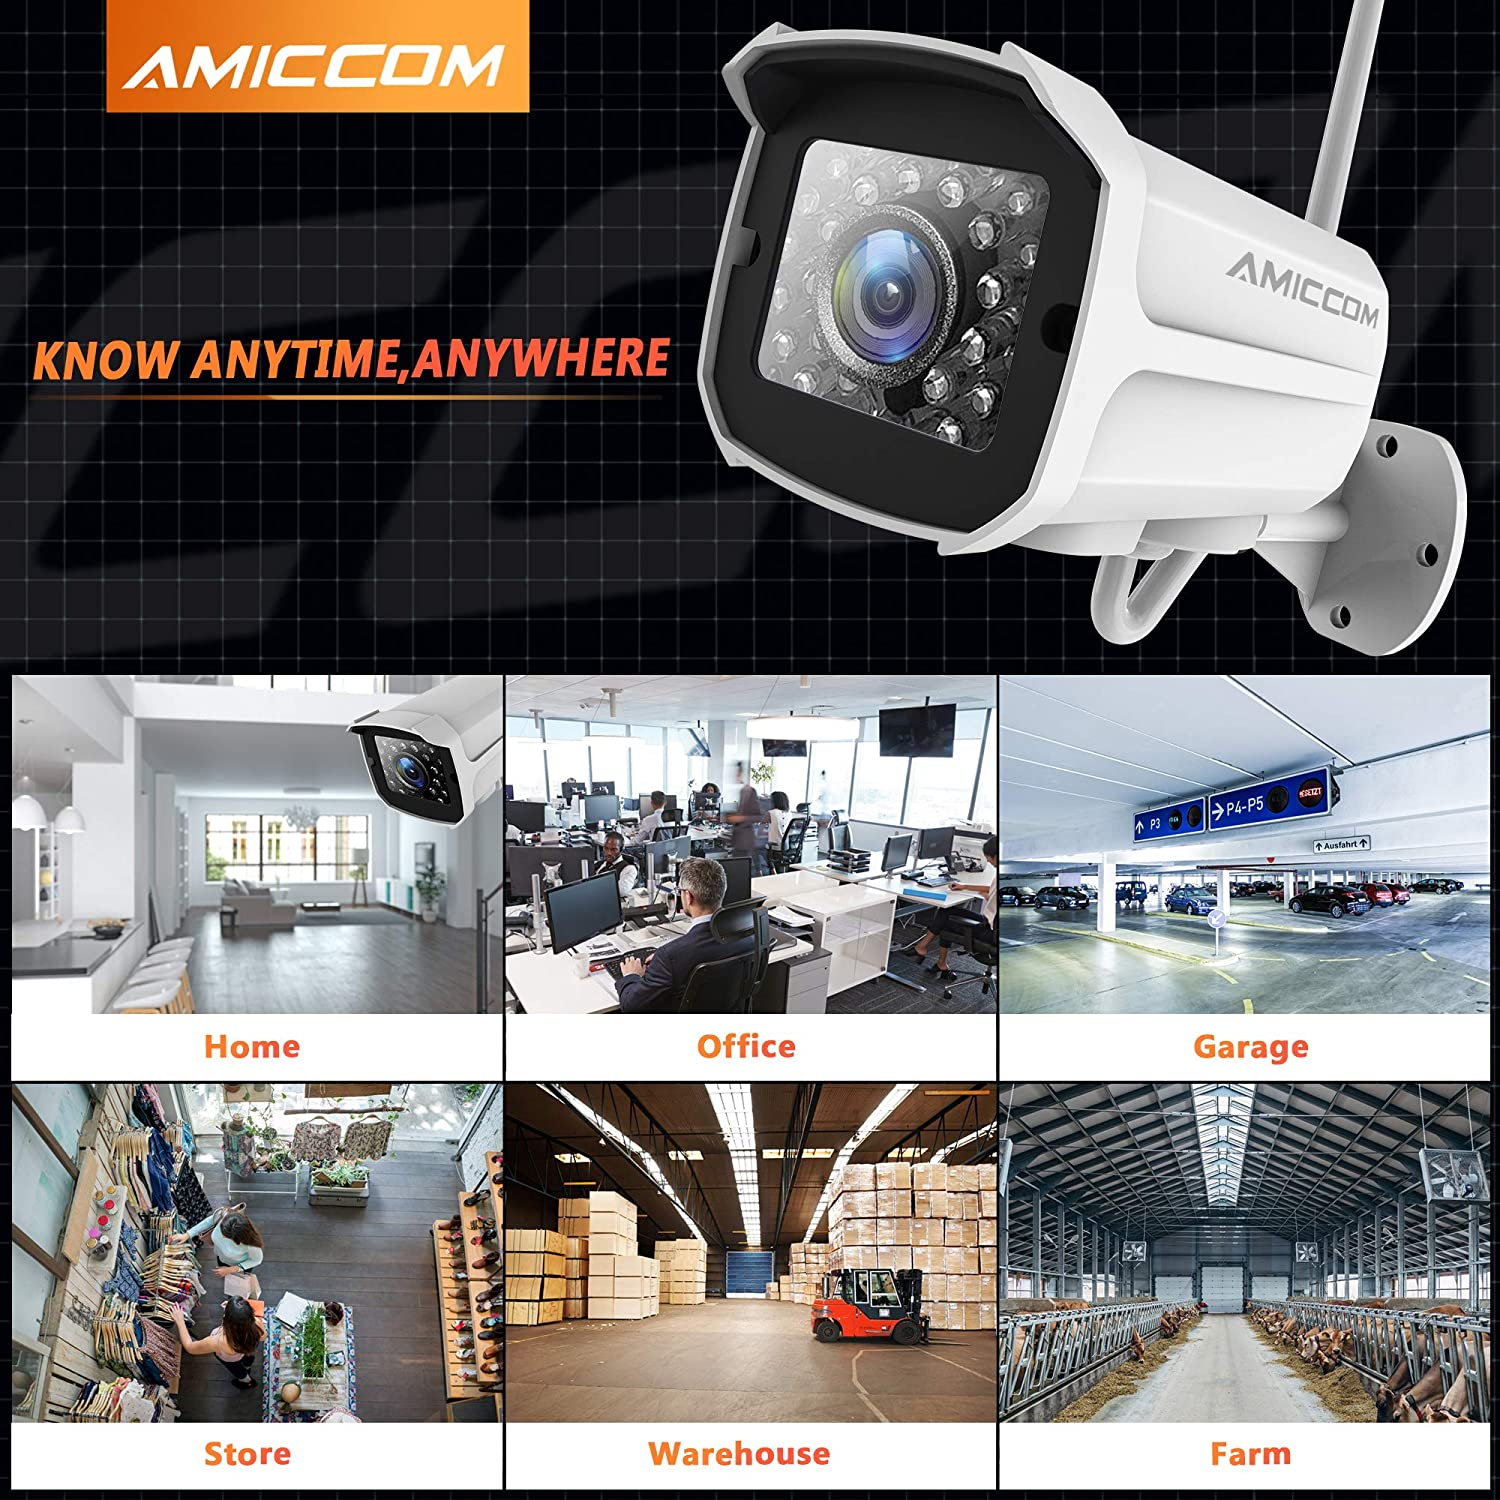 Outdoor Security Camera, 1080P WiFi Camera Surveillance Cameras, IP Camera with Two-Way Audio, IP66 Waterproof, Night Vision, Motion Detection, Activity Alert, Deterrent Alarm - iOS,Android